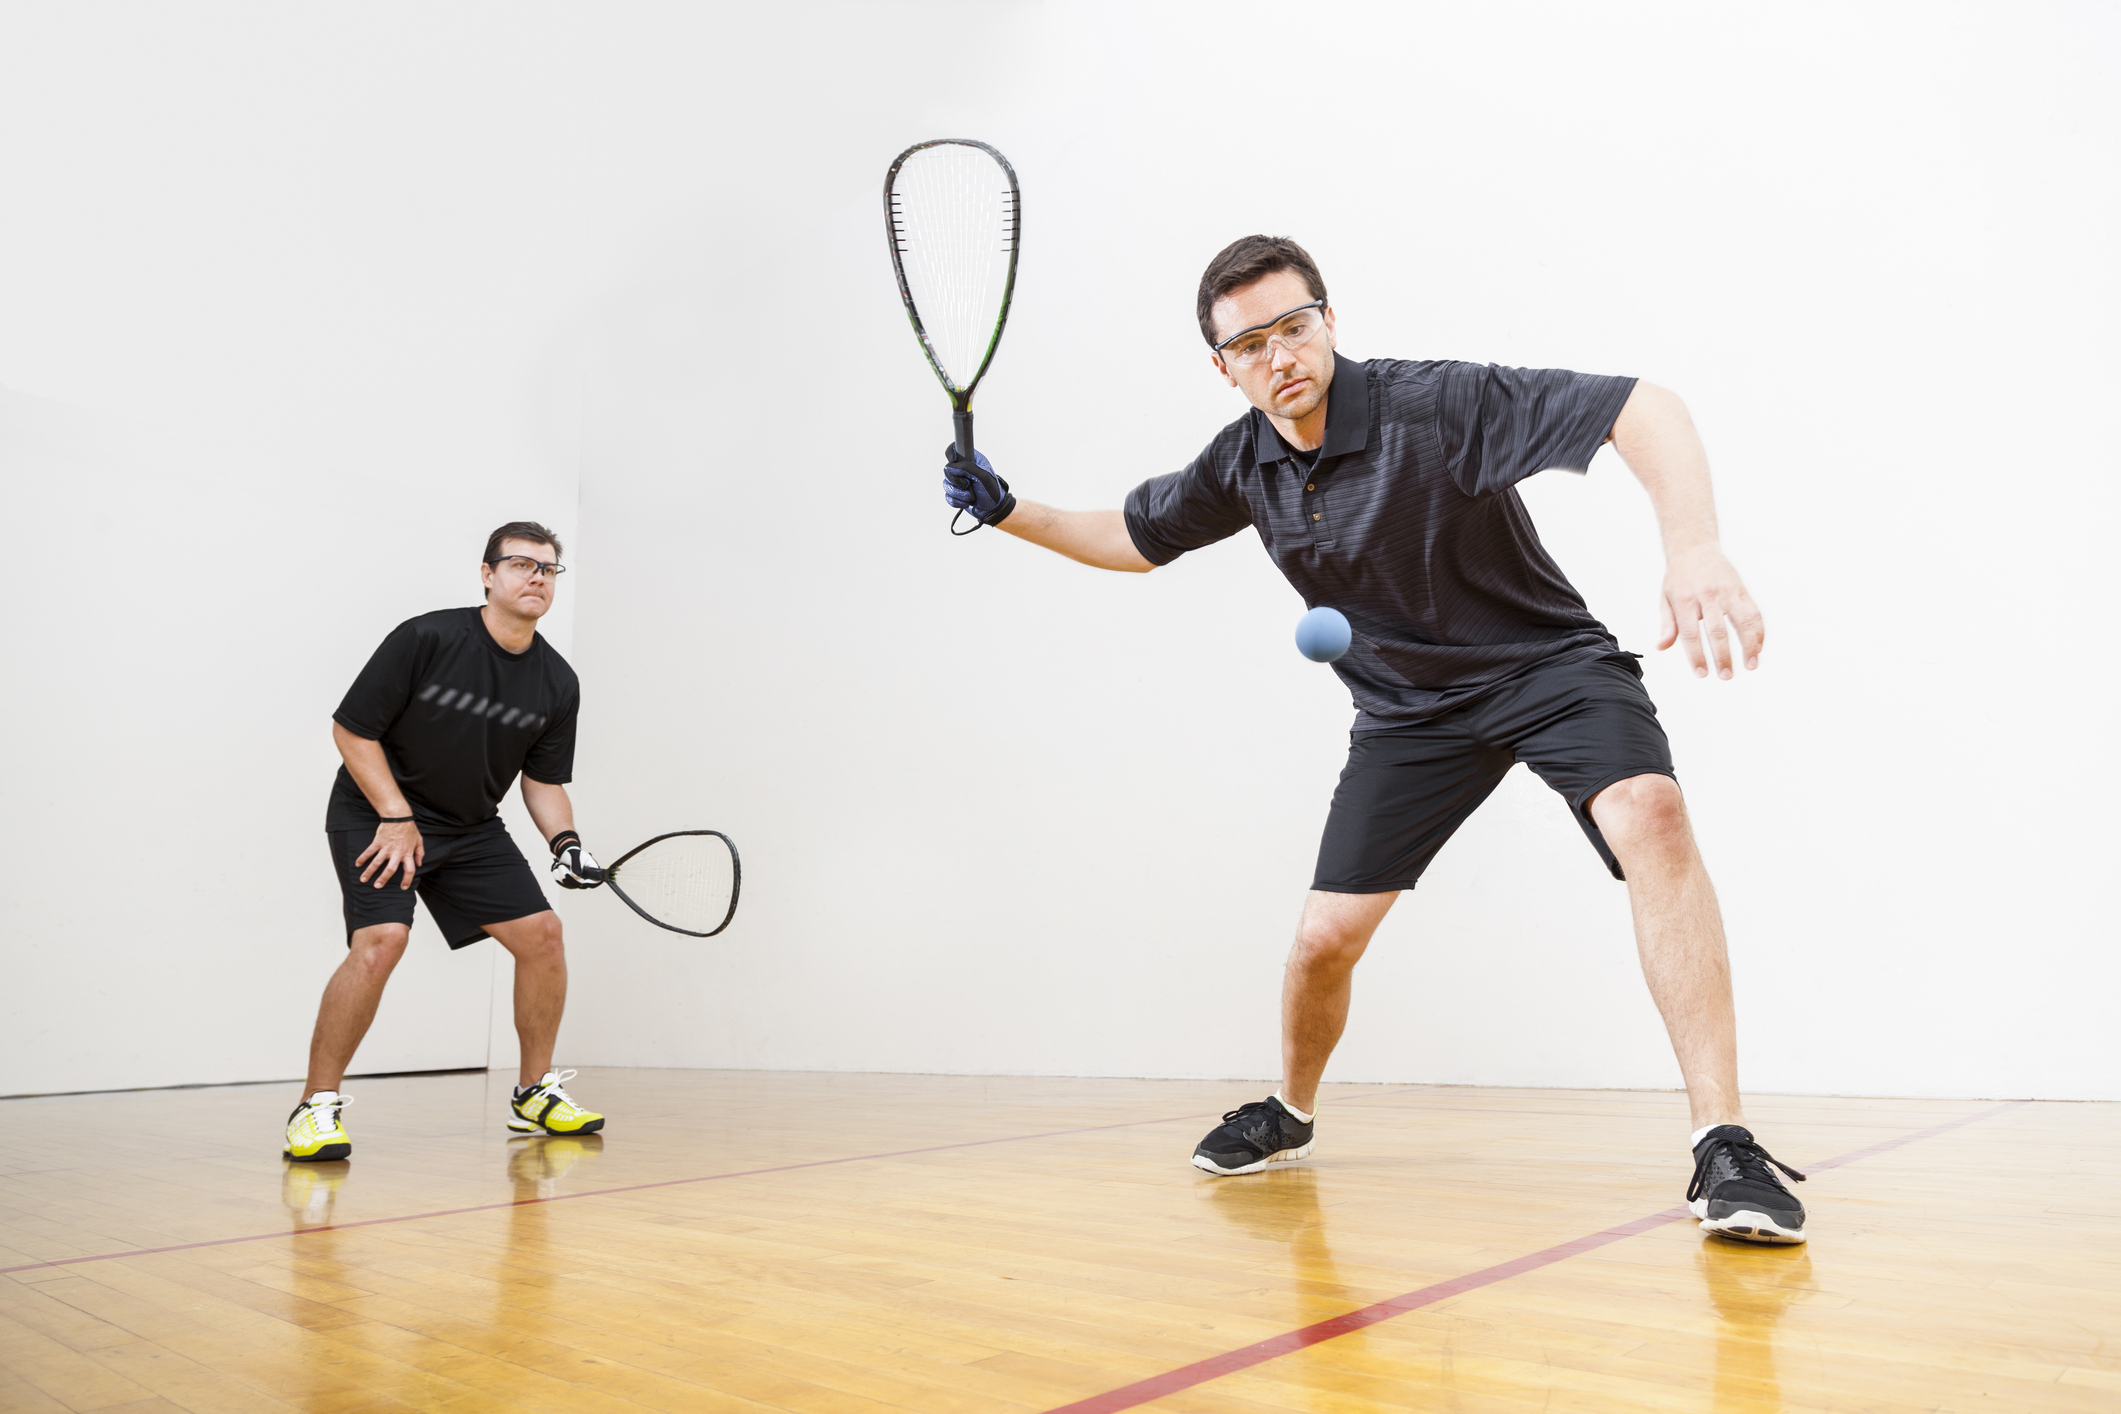 Two men playing racquetball on court.